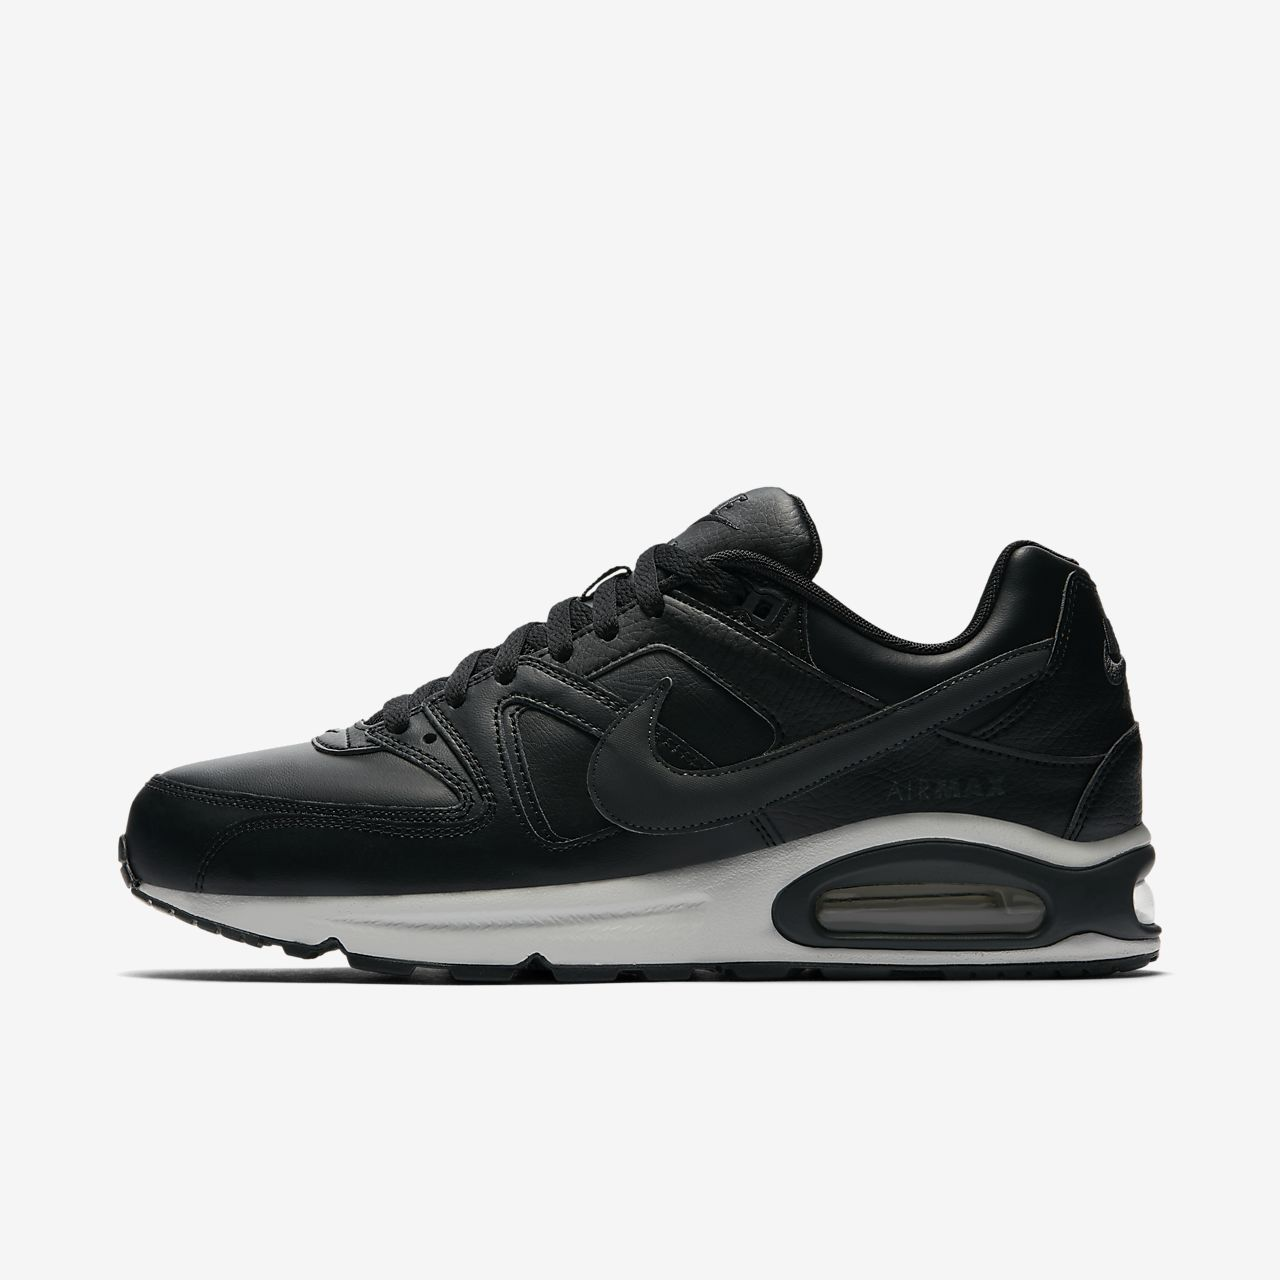 factory authentic f42aa 088b2 ... Nike Air Max Command Mens Shoe